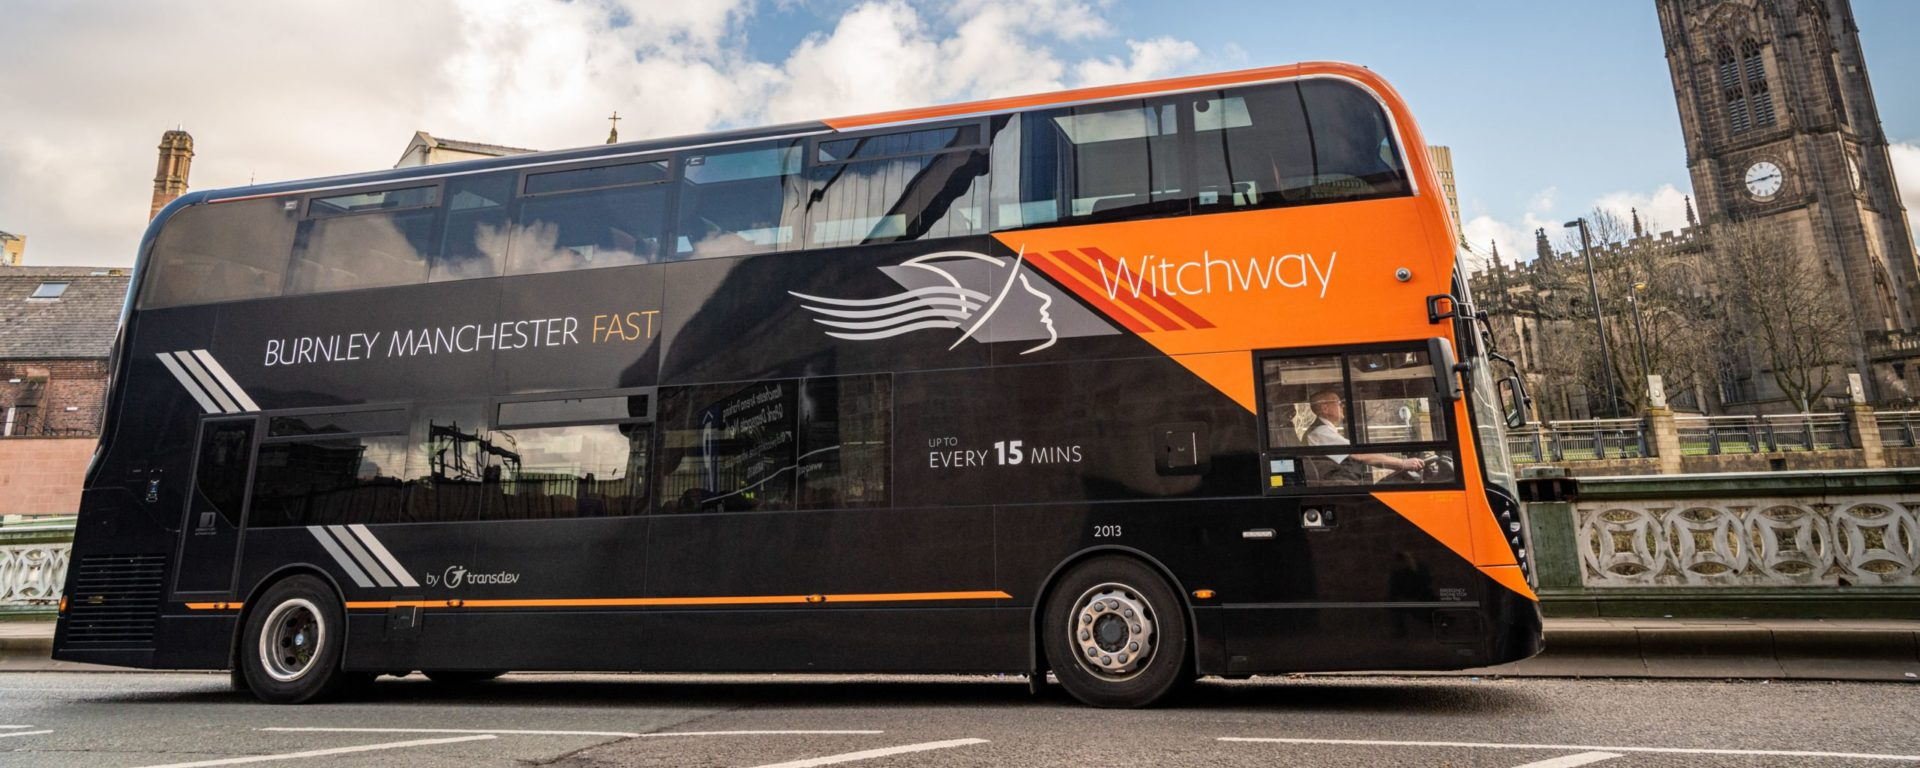 witchway-new-bus